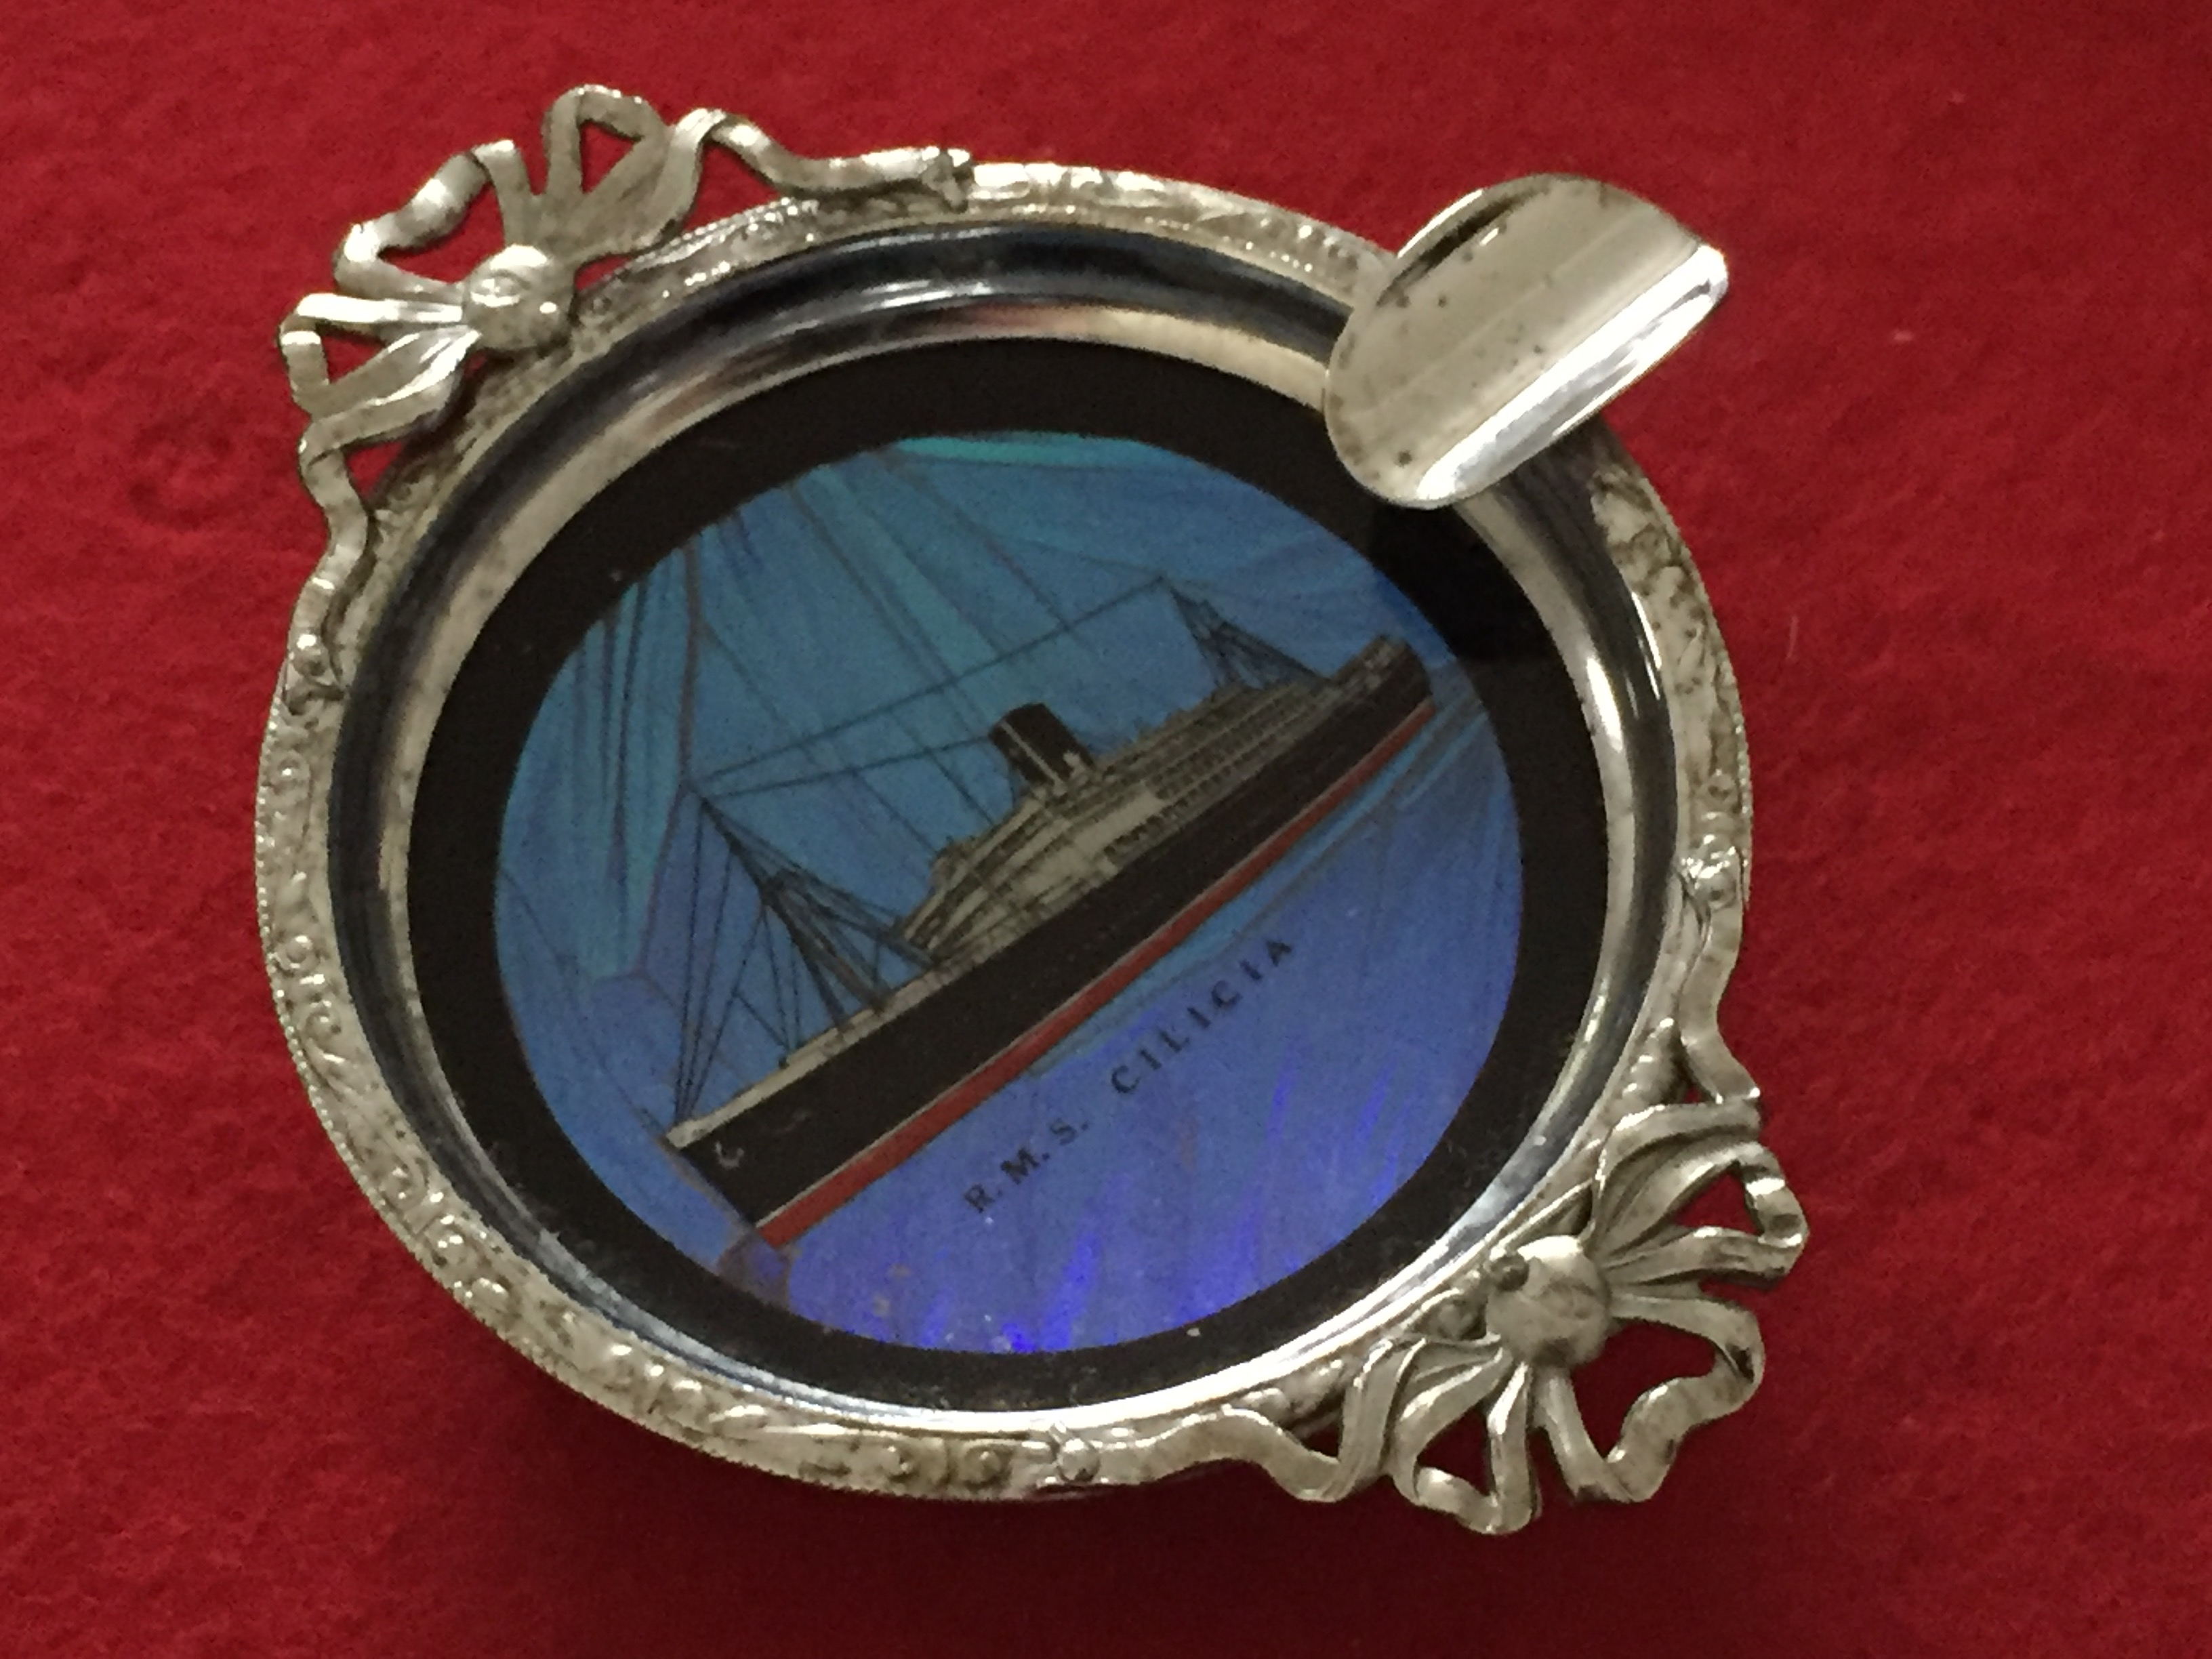 VERY RARE FIND OF A SOUVENIR DISH FROM THE VESSEL THE RMS CILICIA